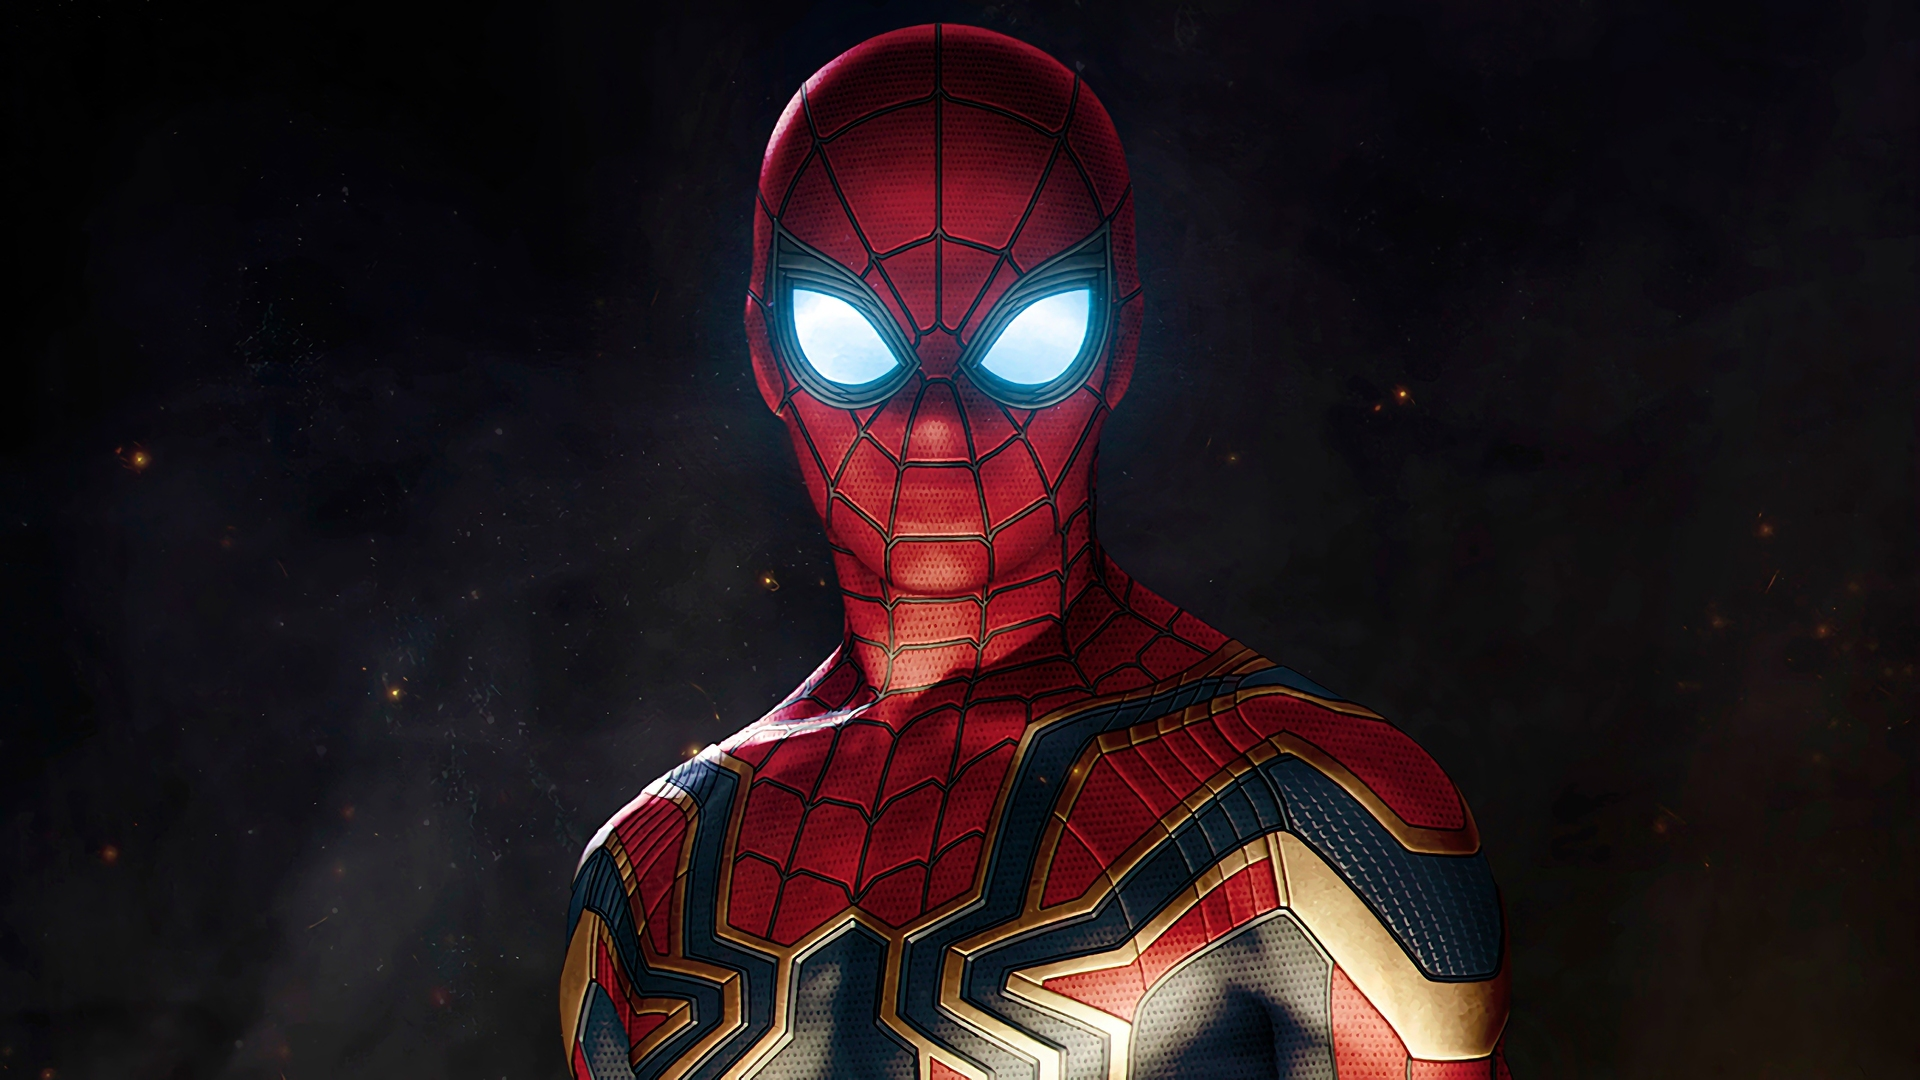 Spiderman 3 Hd Wallpapers 1080p: 1920x1080 Spiderman Avengers Infinity War Suit Laptop Full